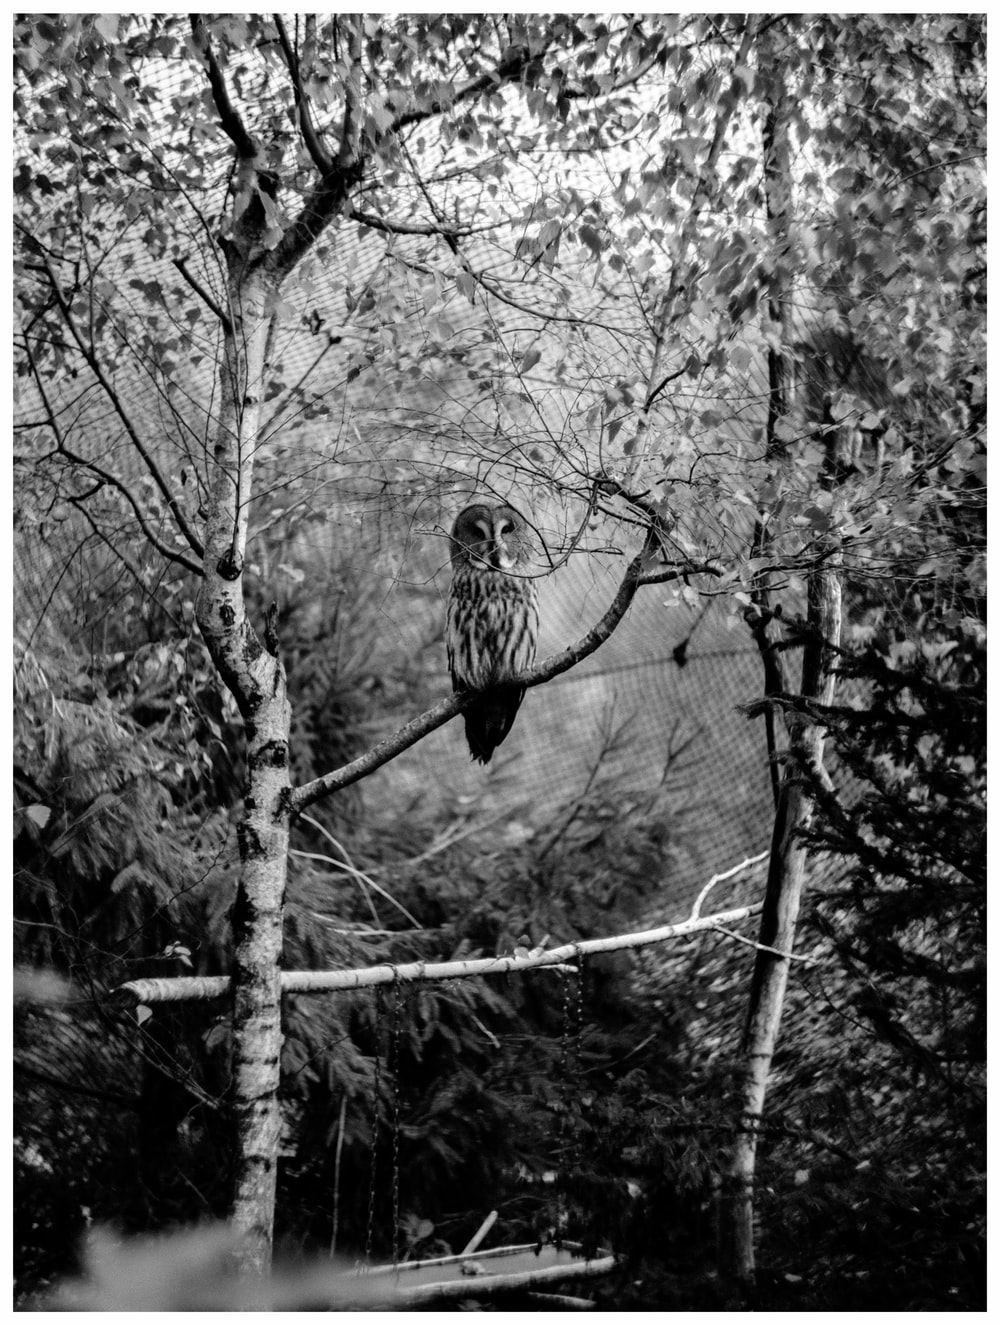 grayscale photo of owl on tree branch